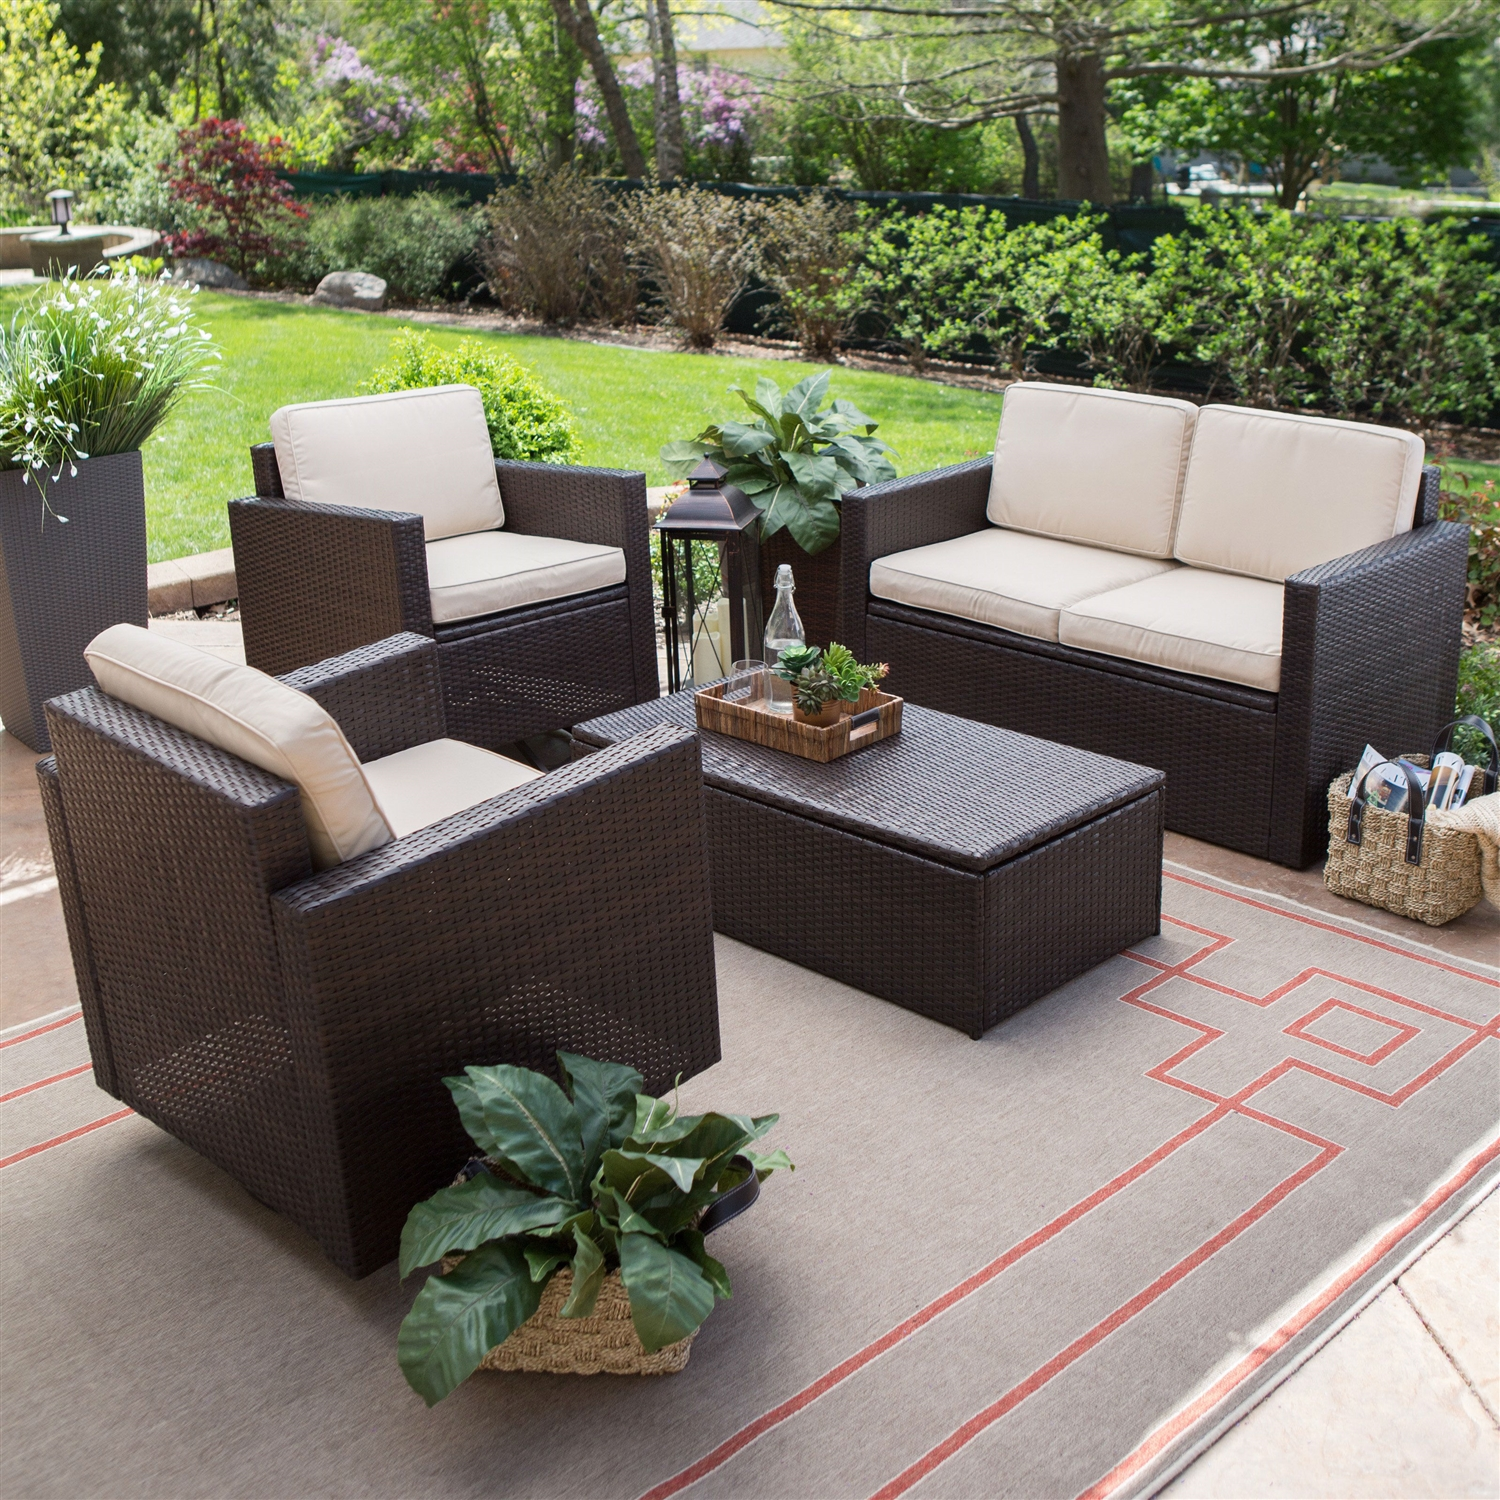 resin wicker patio furniture sets Outdoor Wicker Resin 4-Piece Patio Furniture Dinning Set